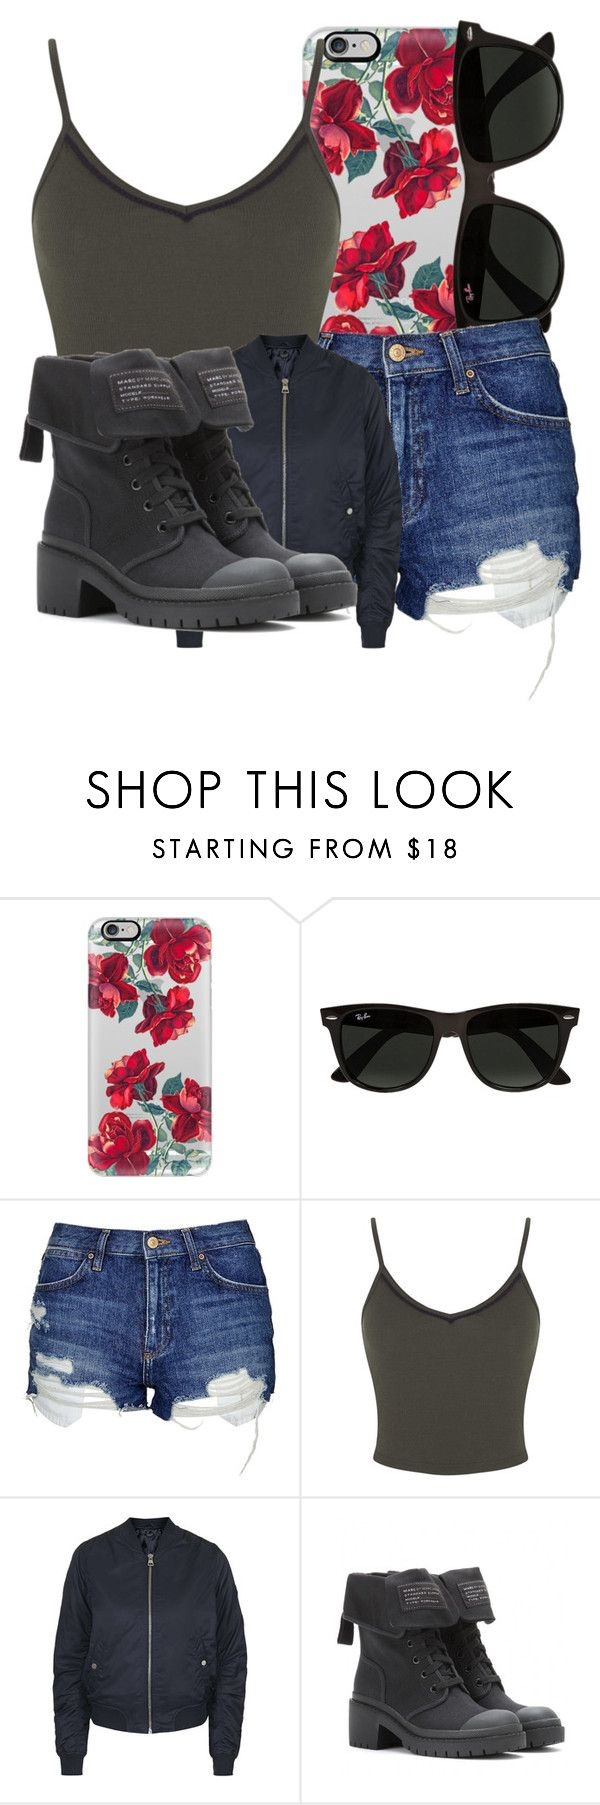 """Untitled #3500"" by dianna-argons-lover ❤ liked on Polyvore featuring Casetify, Ray-Ban, Topshop, Miss Selfridge and Marc by Marc Jacobs"